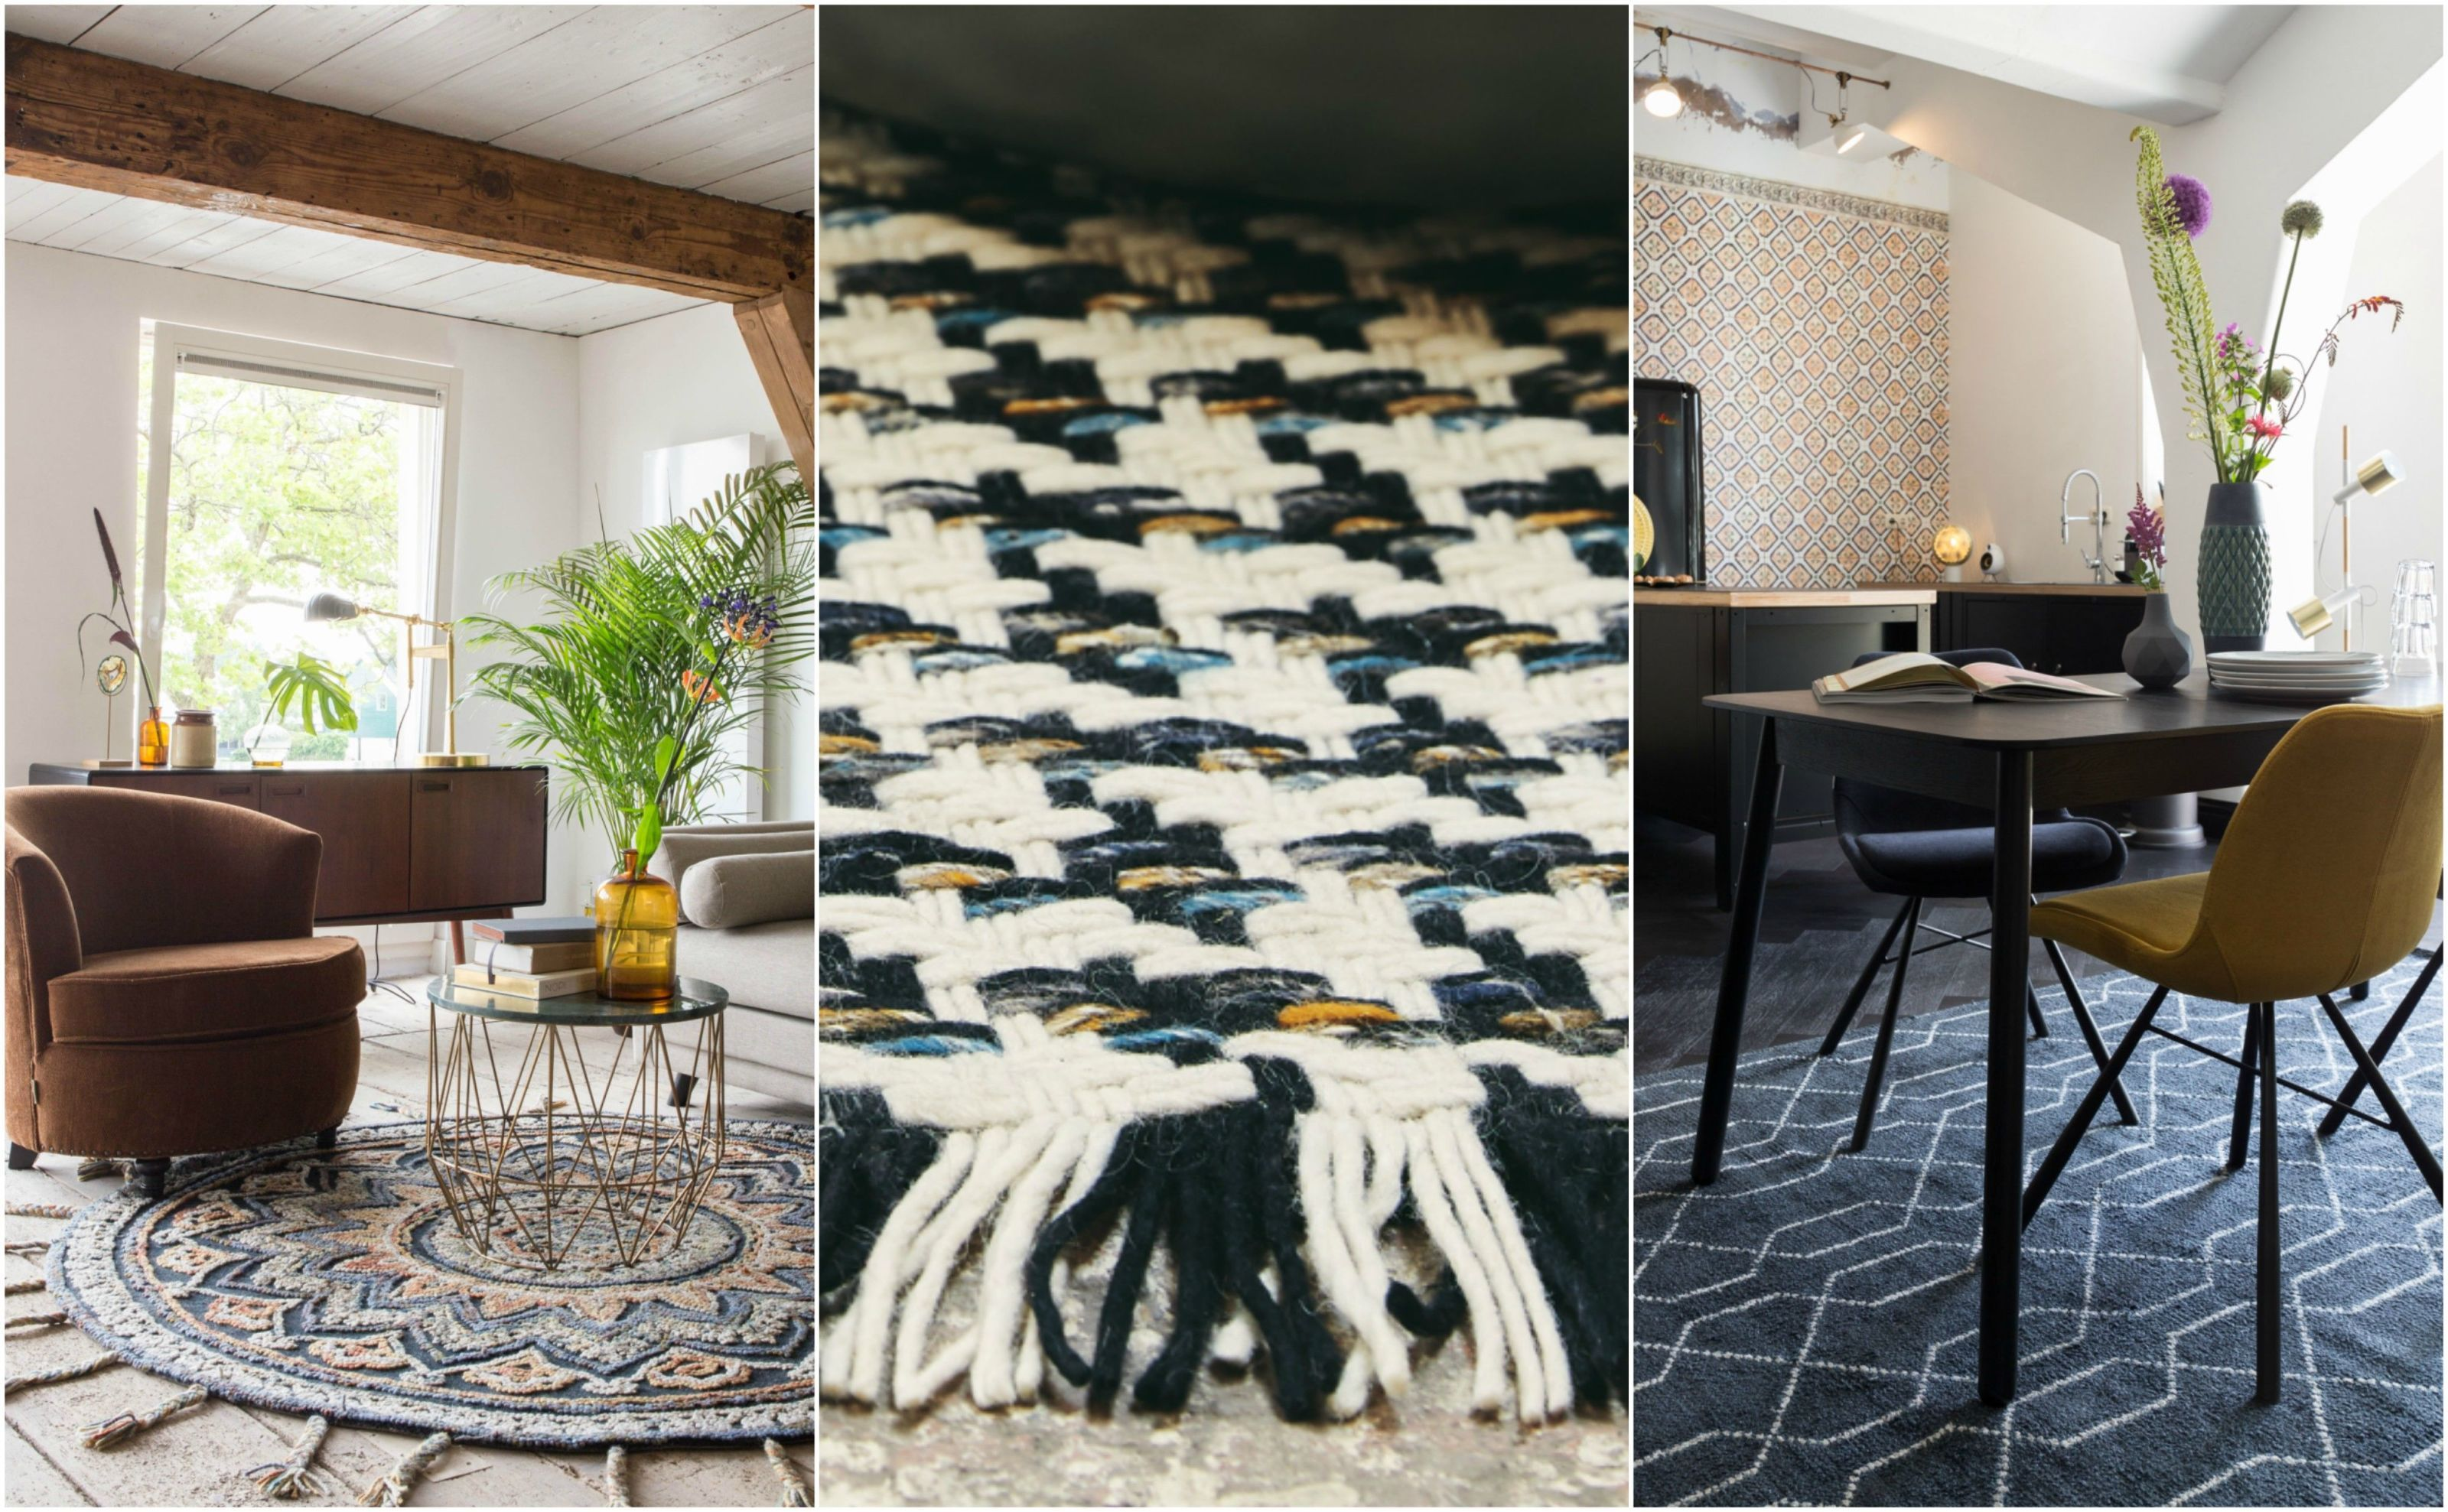 U0027As A General Rule Buy The Largest Size And The Best Quality Rug You Can  Afford And Shop Around,u0027 Say The Experts At Modern Rugs.